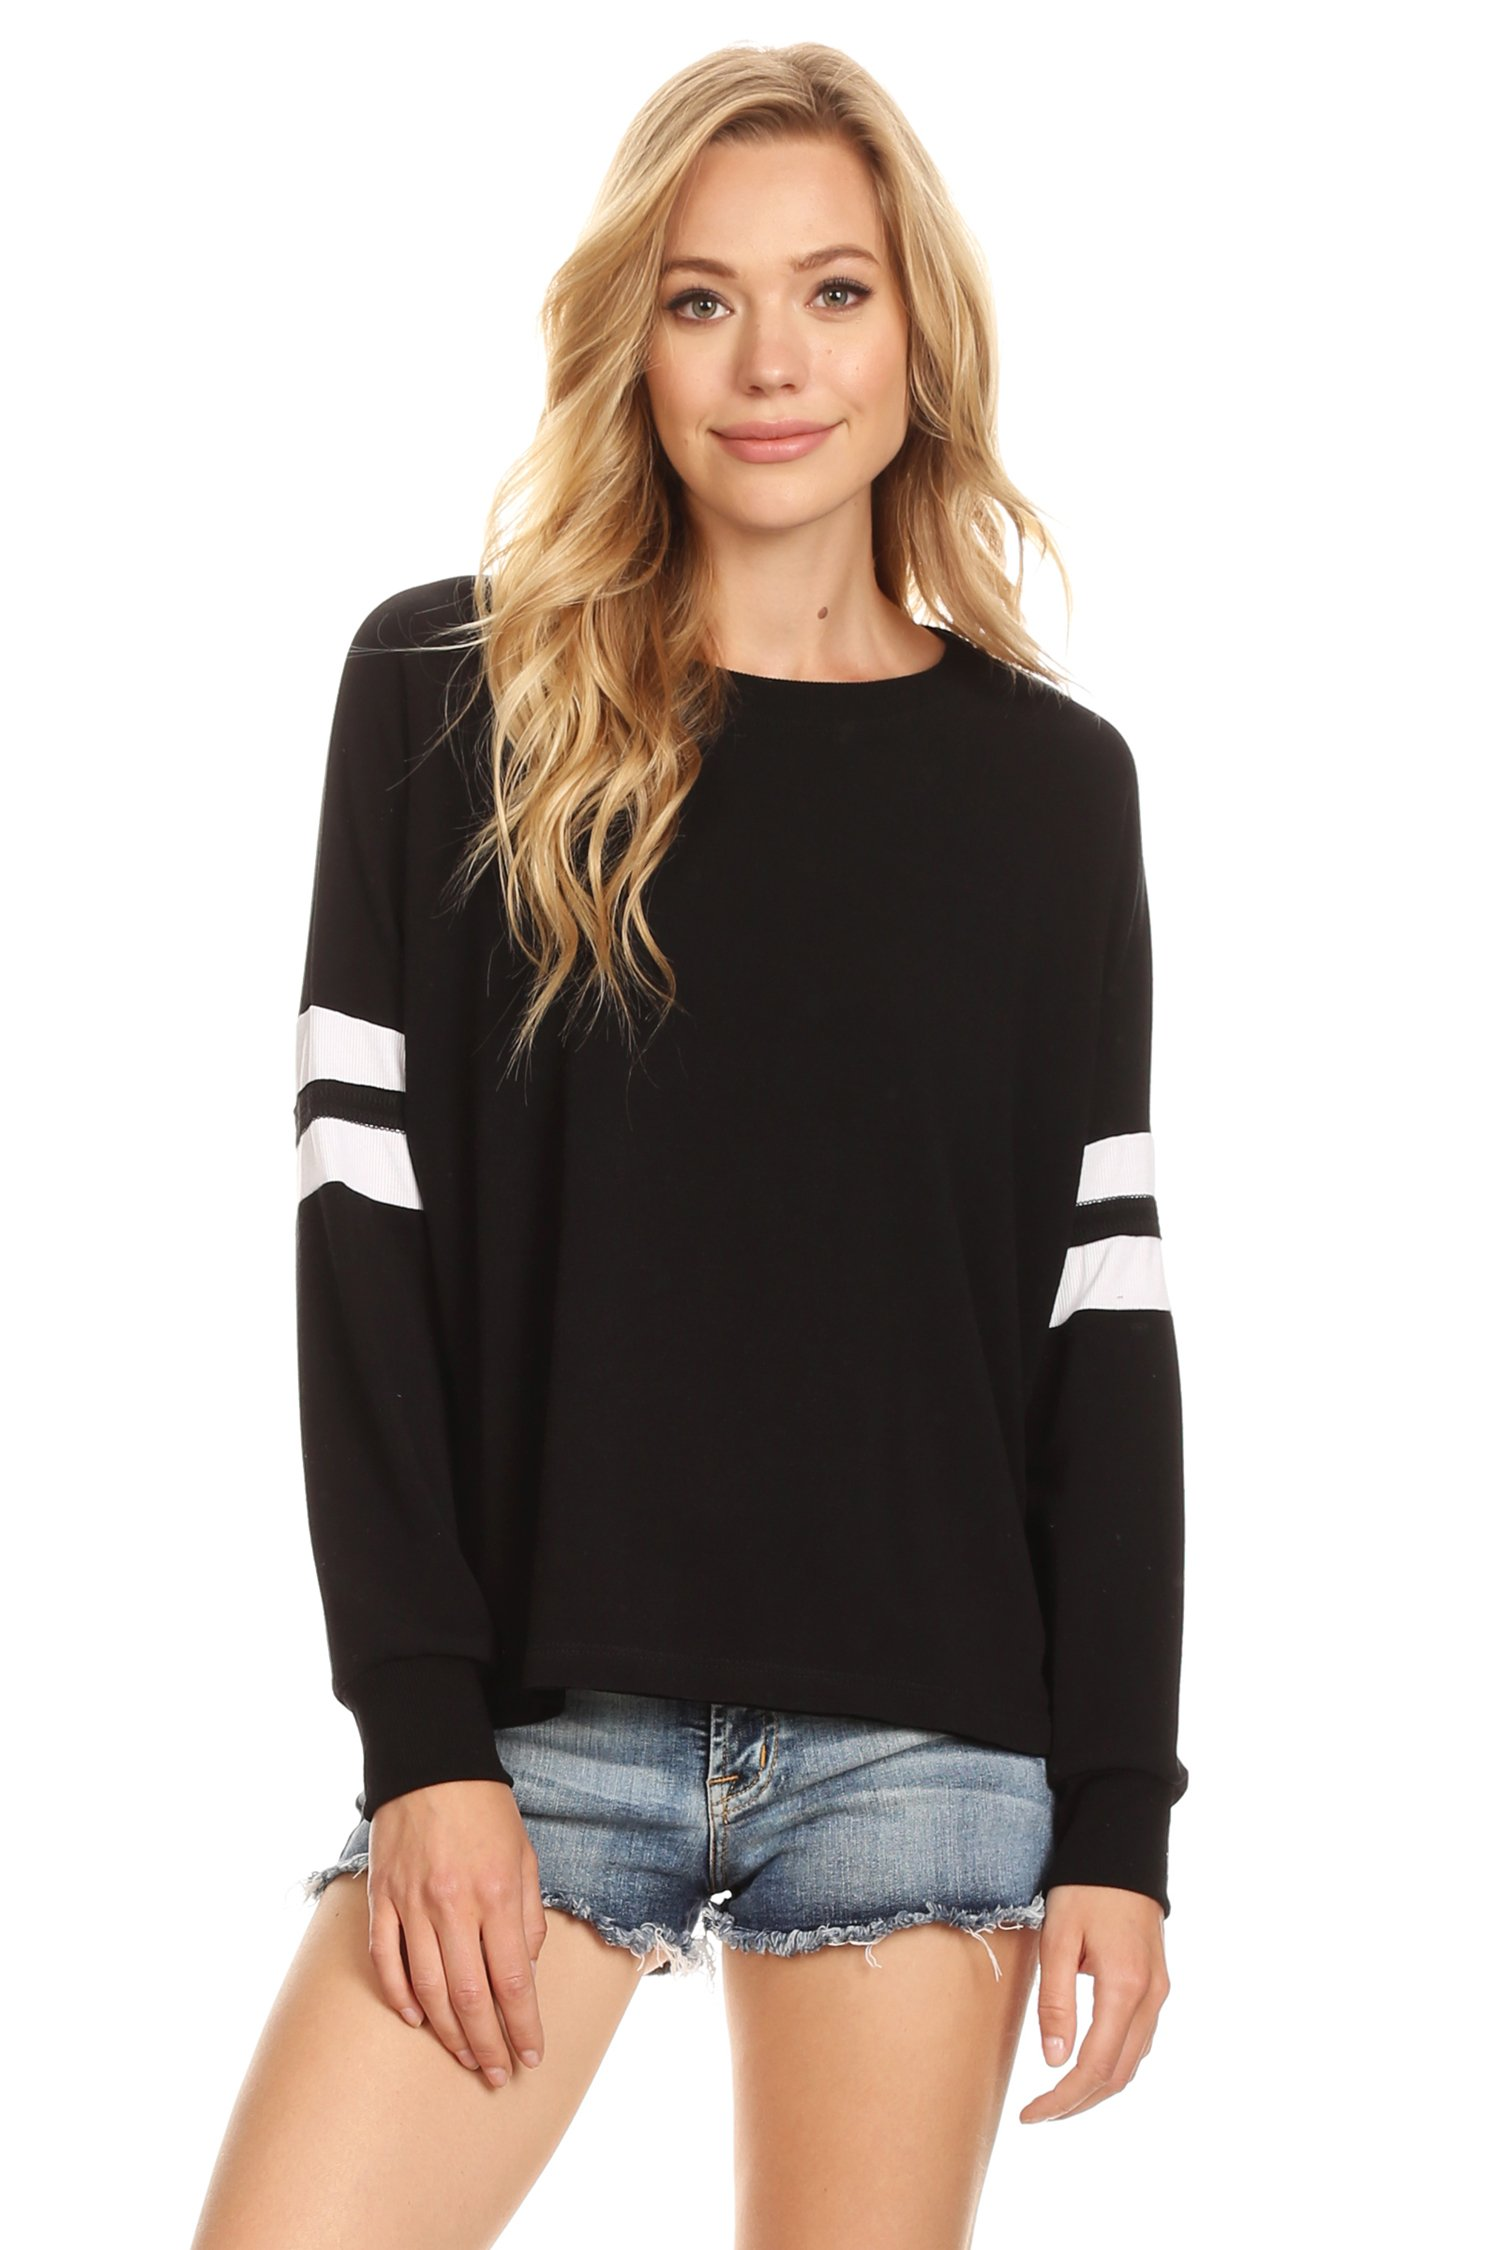 Alexander + David A+D Womens Casual Lightweight Varsity Stripe Long Sleeve Top (Black, Medium) by Alexander + David